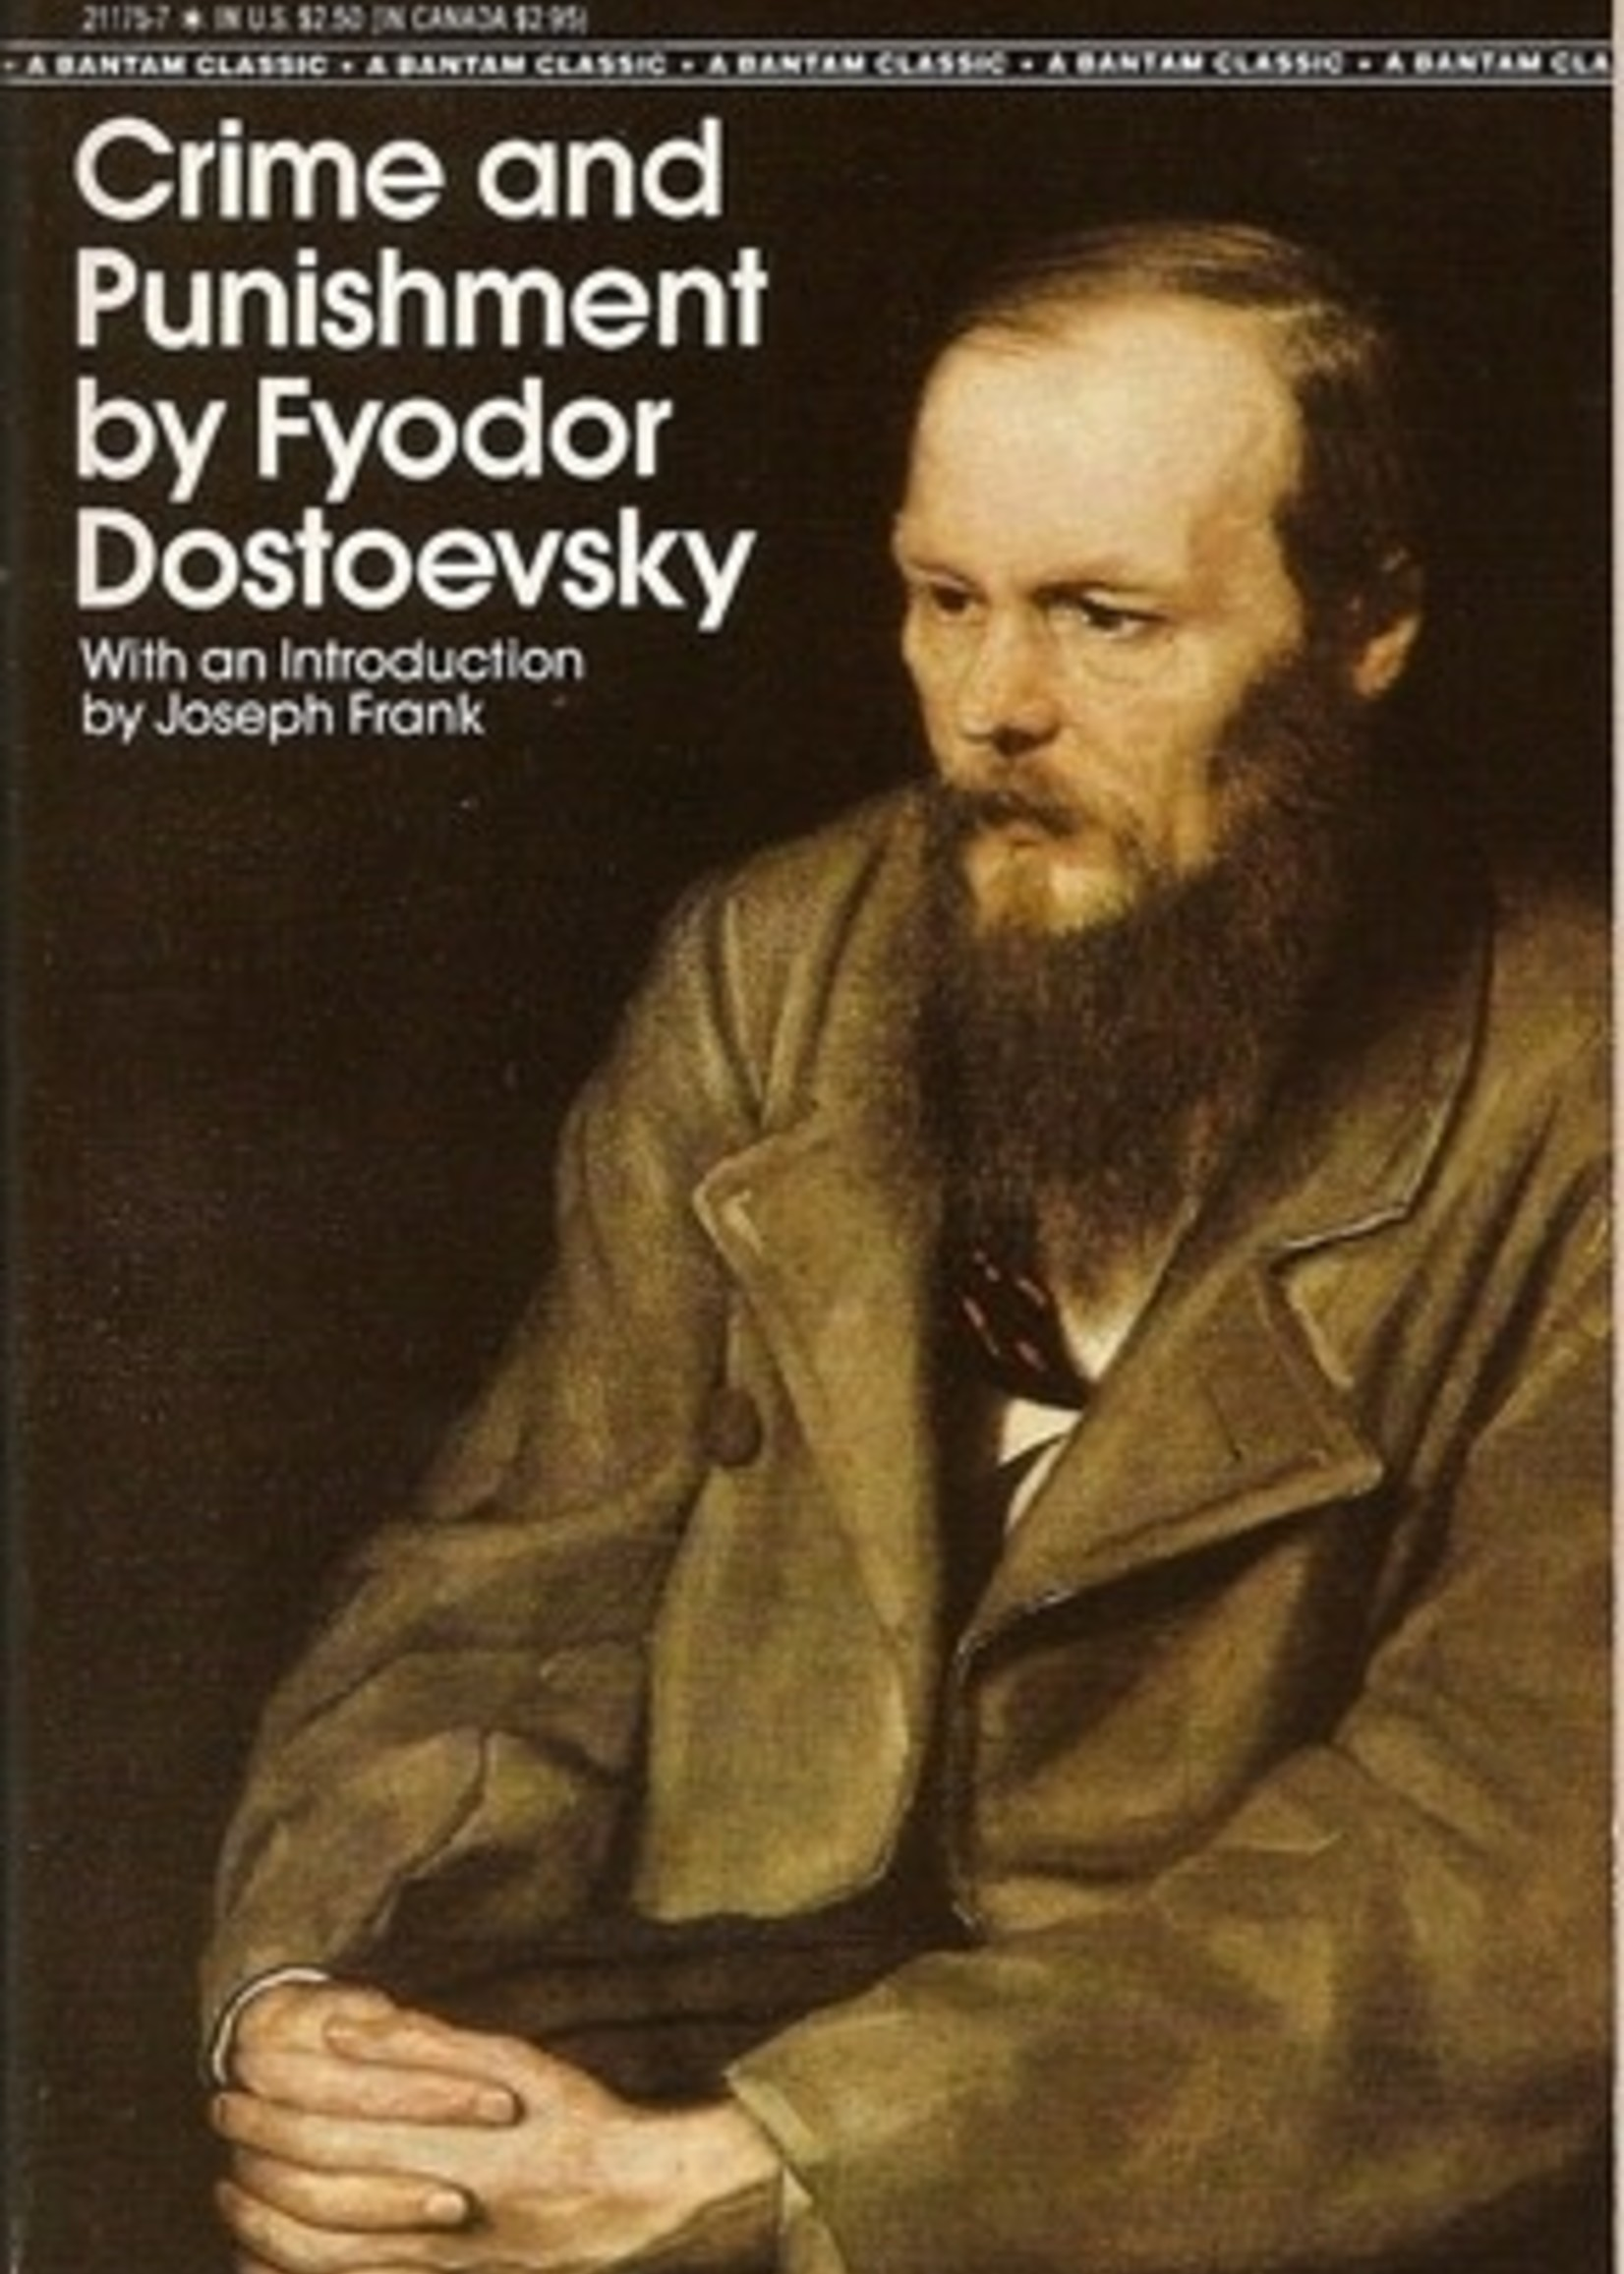 USED - Crime and Punishment by Fyodor Dostoevsky